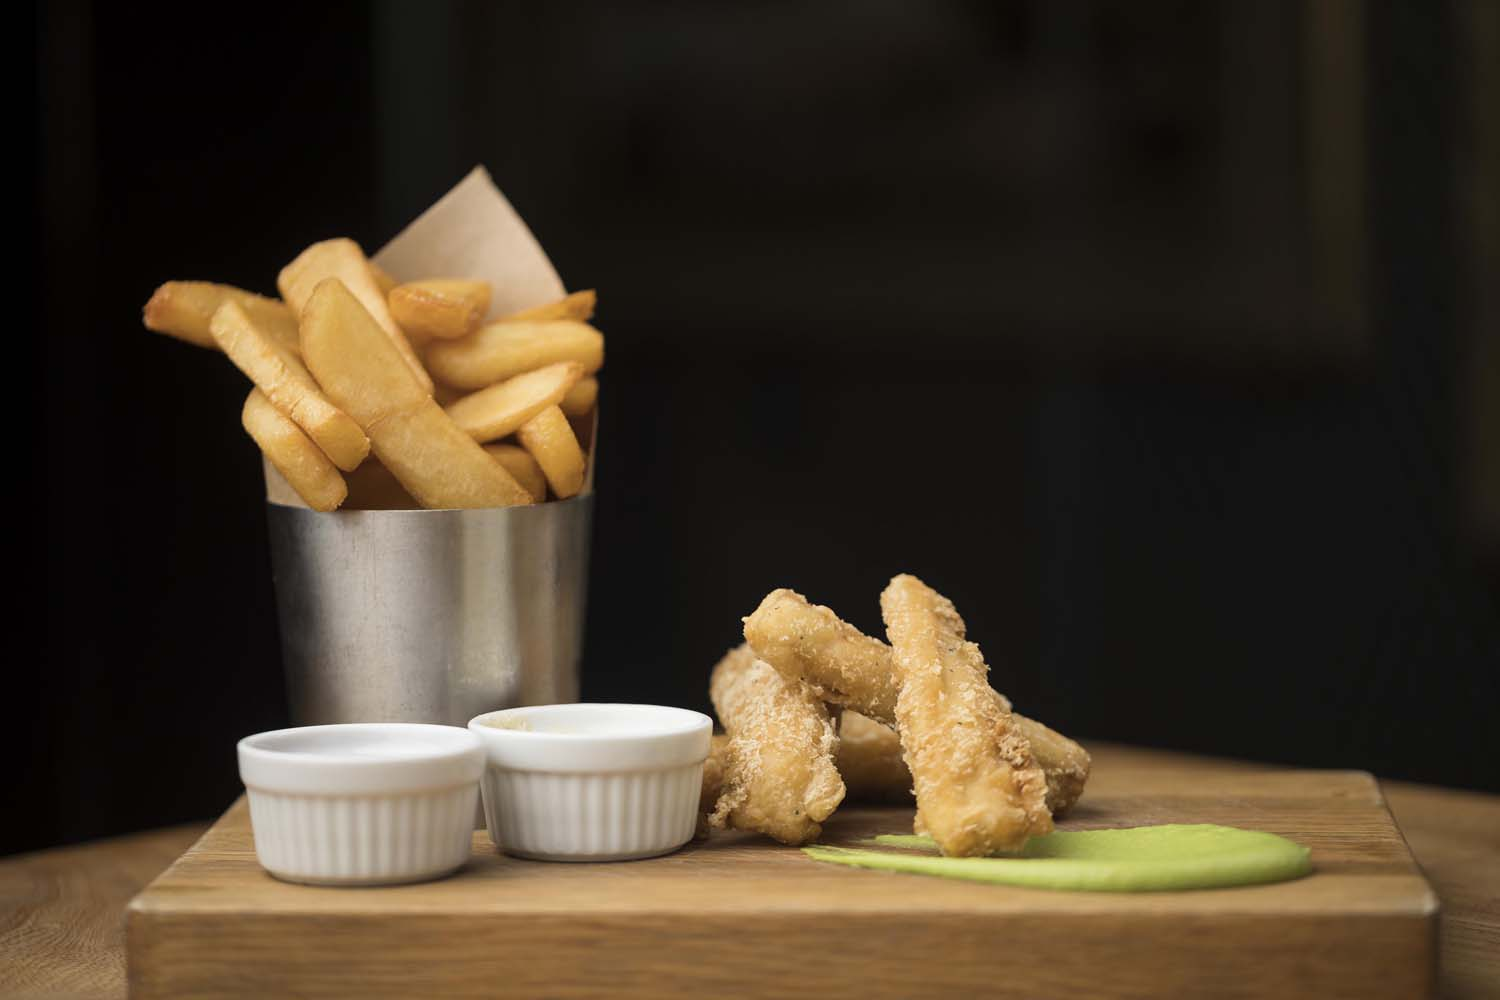 Fish and Chips with Mushy Peas smear in Brooklyn